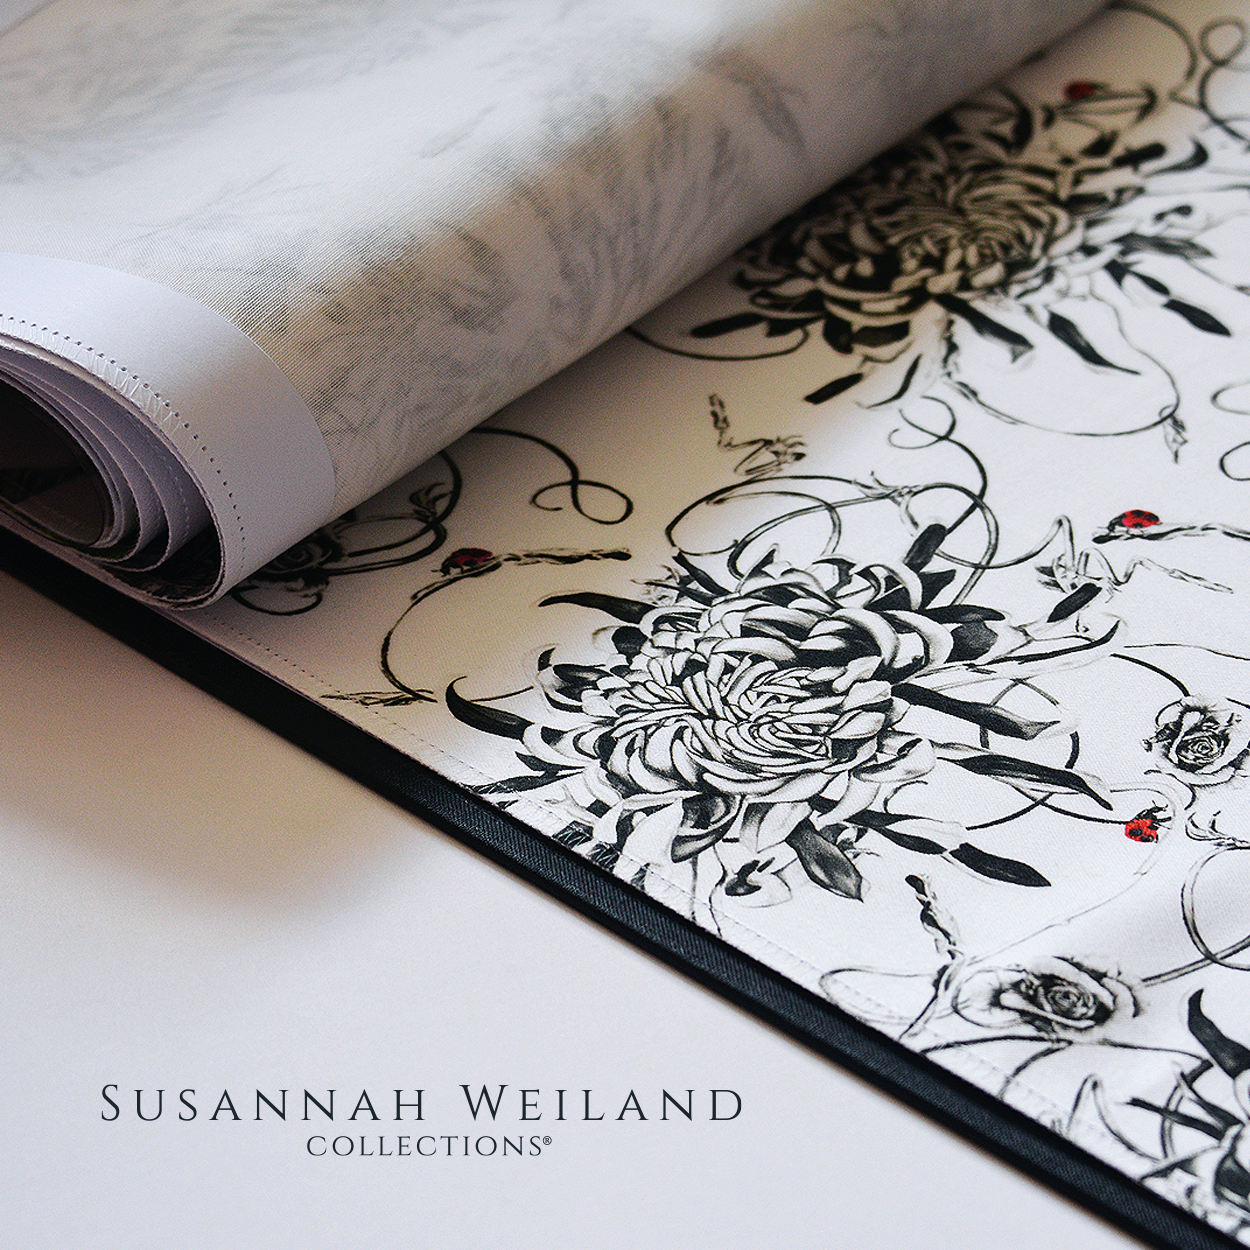 Hand drawn design from The Botanical Collection. Heavy Cotton Satin Fabric for furnishings and upholstery. #fabric #cottonsatin #handdrawn #upholestry #furnishingfabric #madeintheuk #botanicalillustration #botanicaldesign #chrysanthemums #richmonduponthames #fabricdesign #textiledesigns #homedecor #luxuryfabric #luxurytextiles #interiorfabric #flowerillustration #interiordecorating #upholsteryfabric